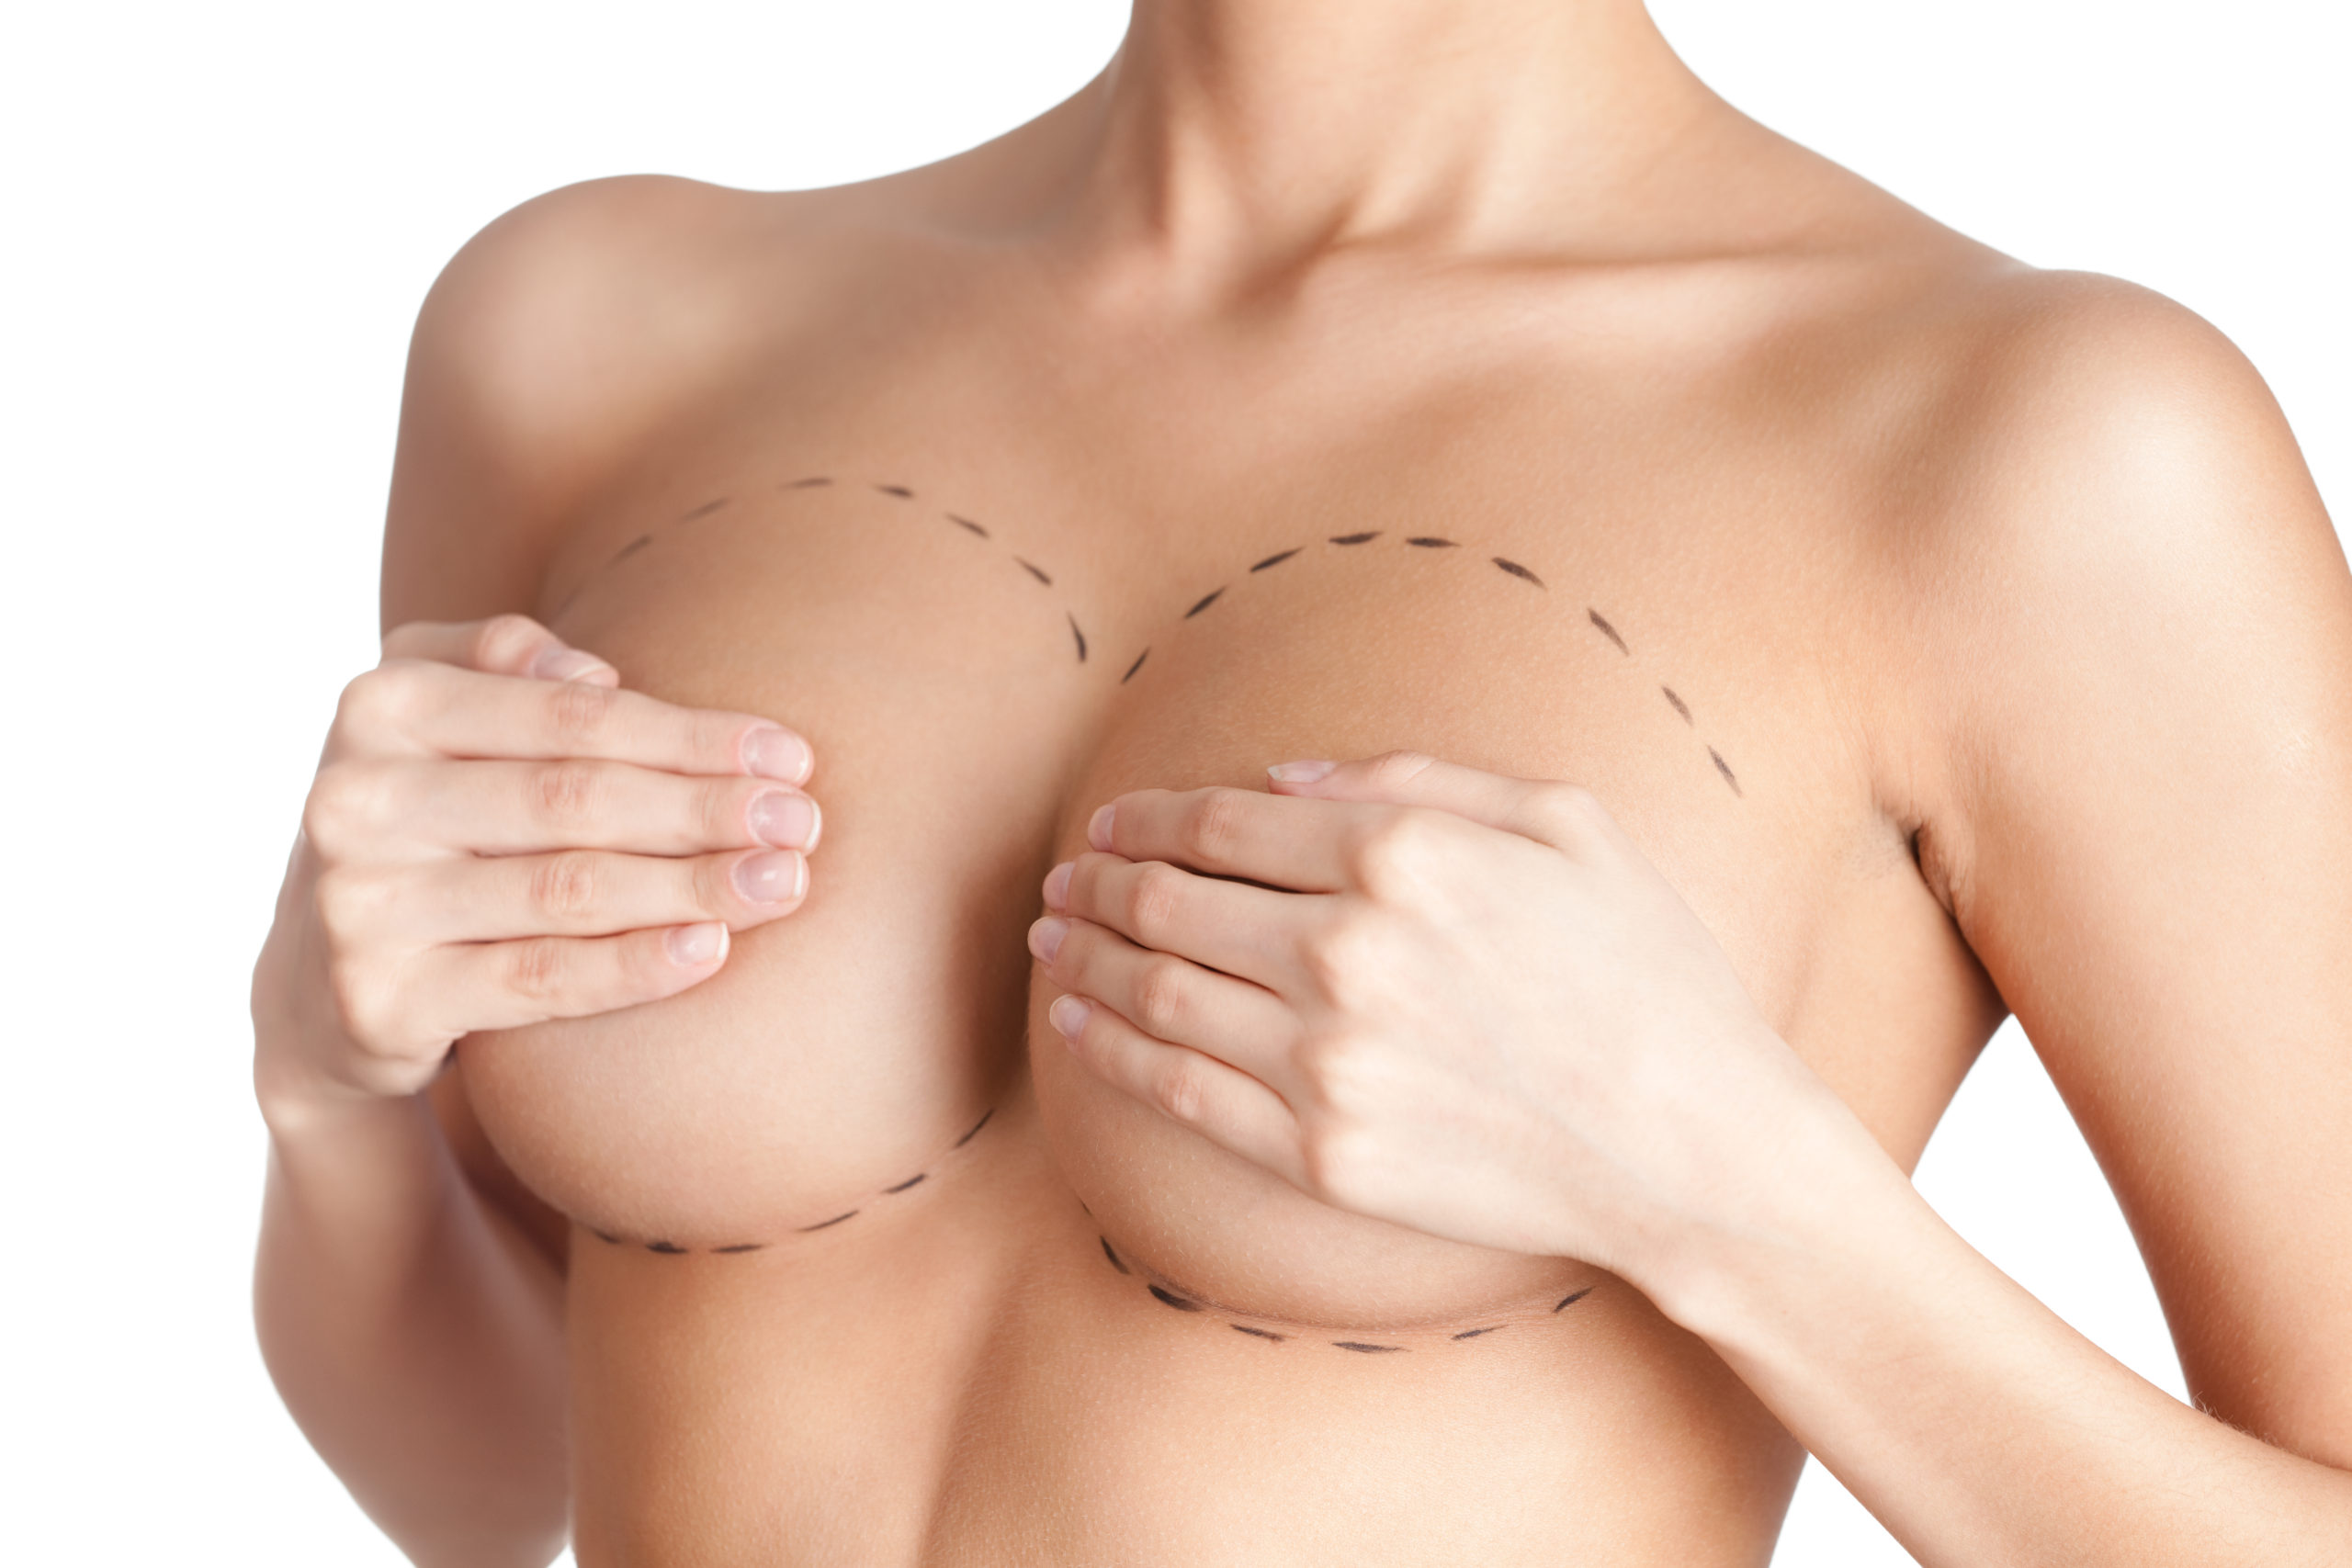 woman holding breasts with surgical marks